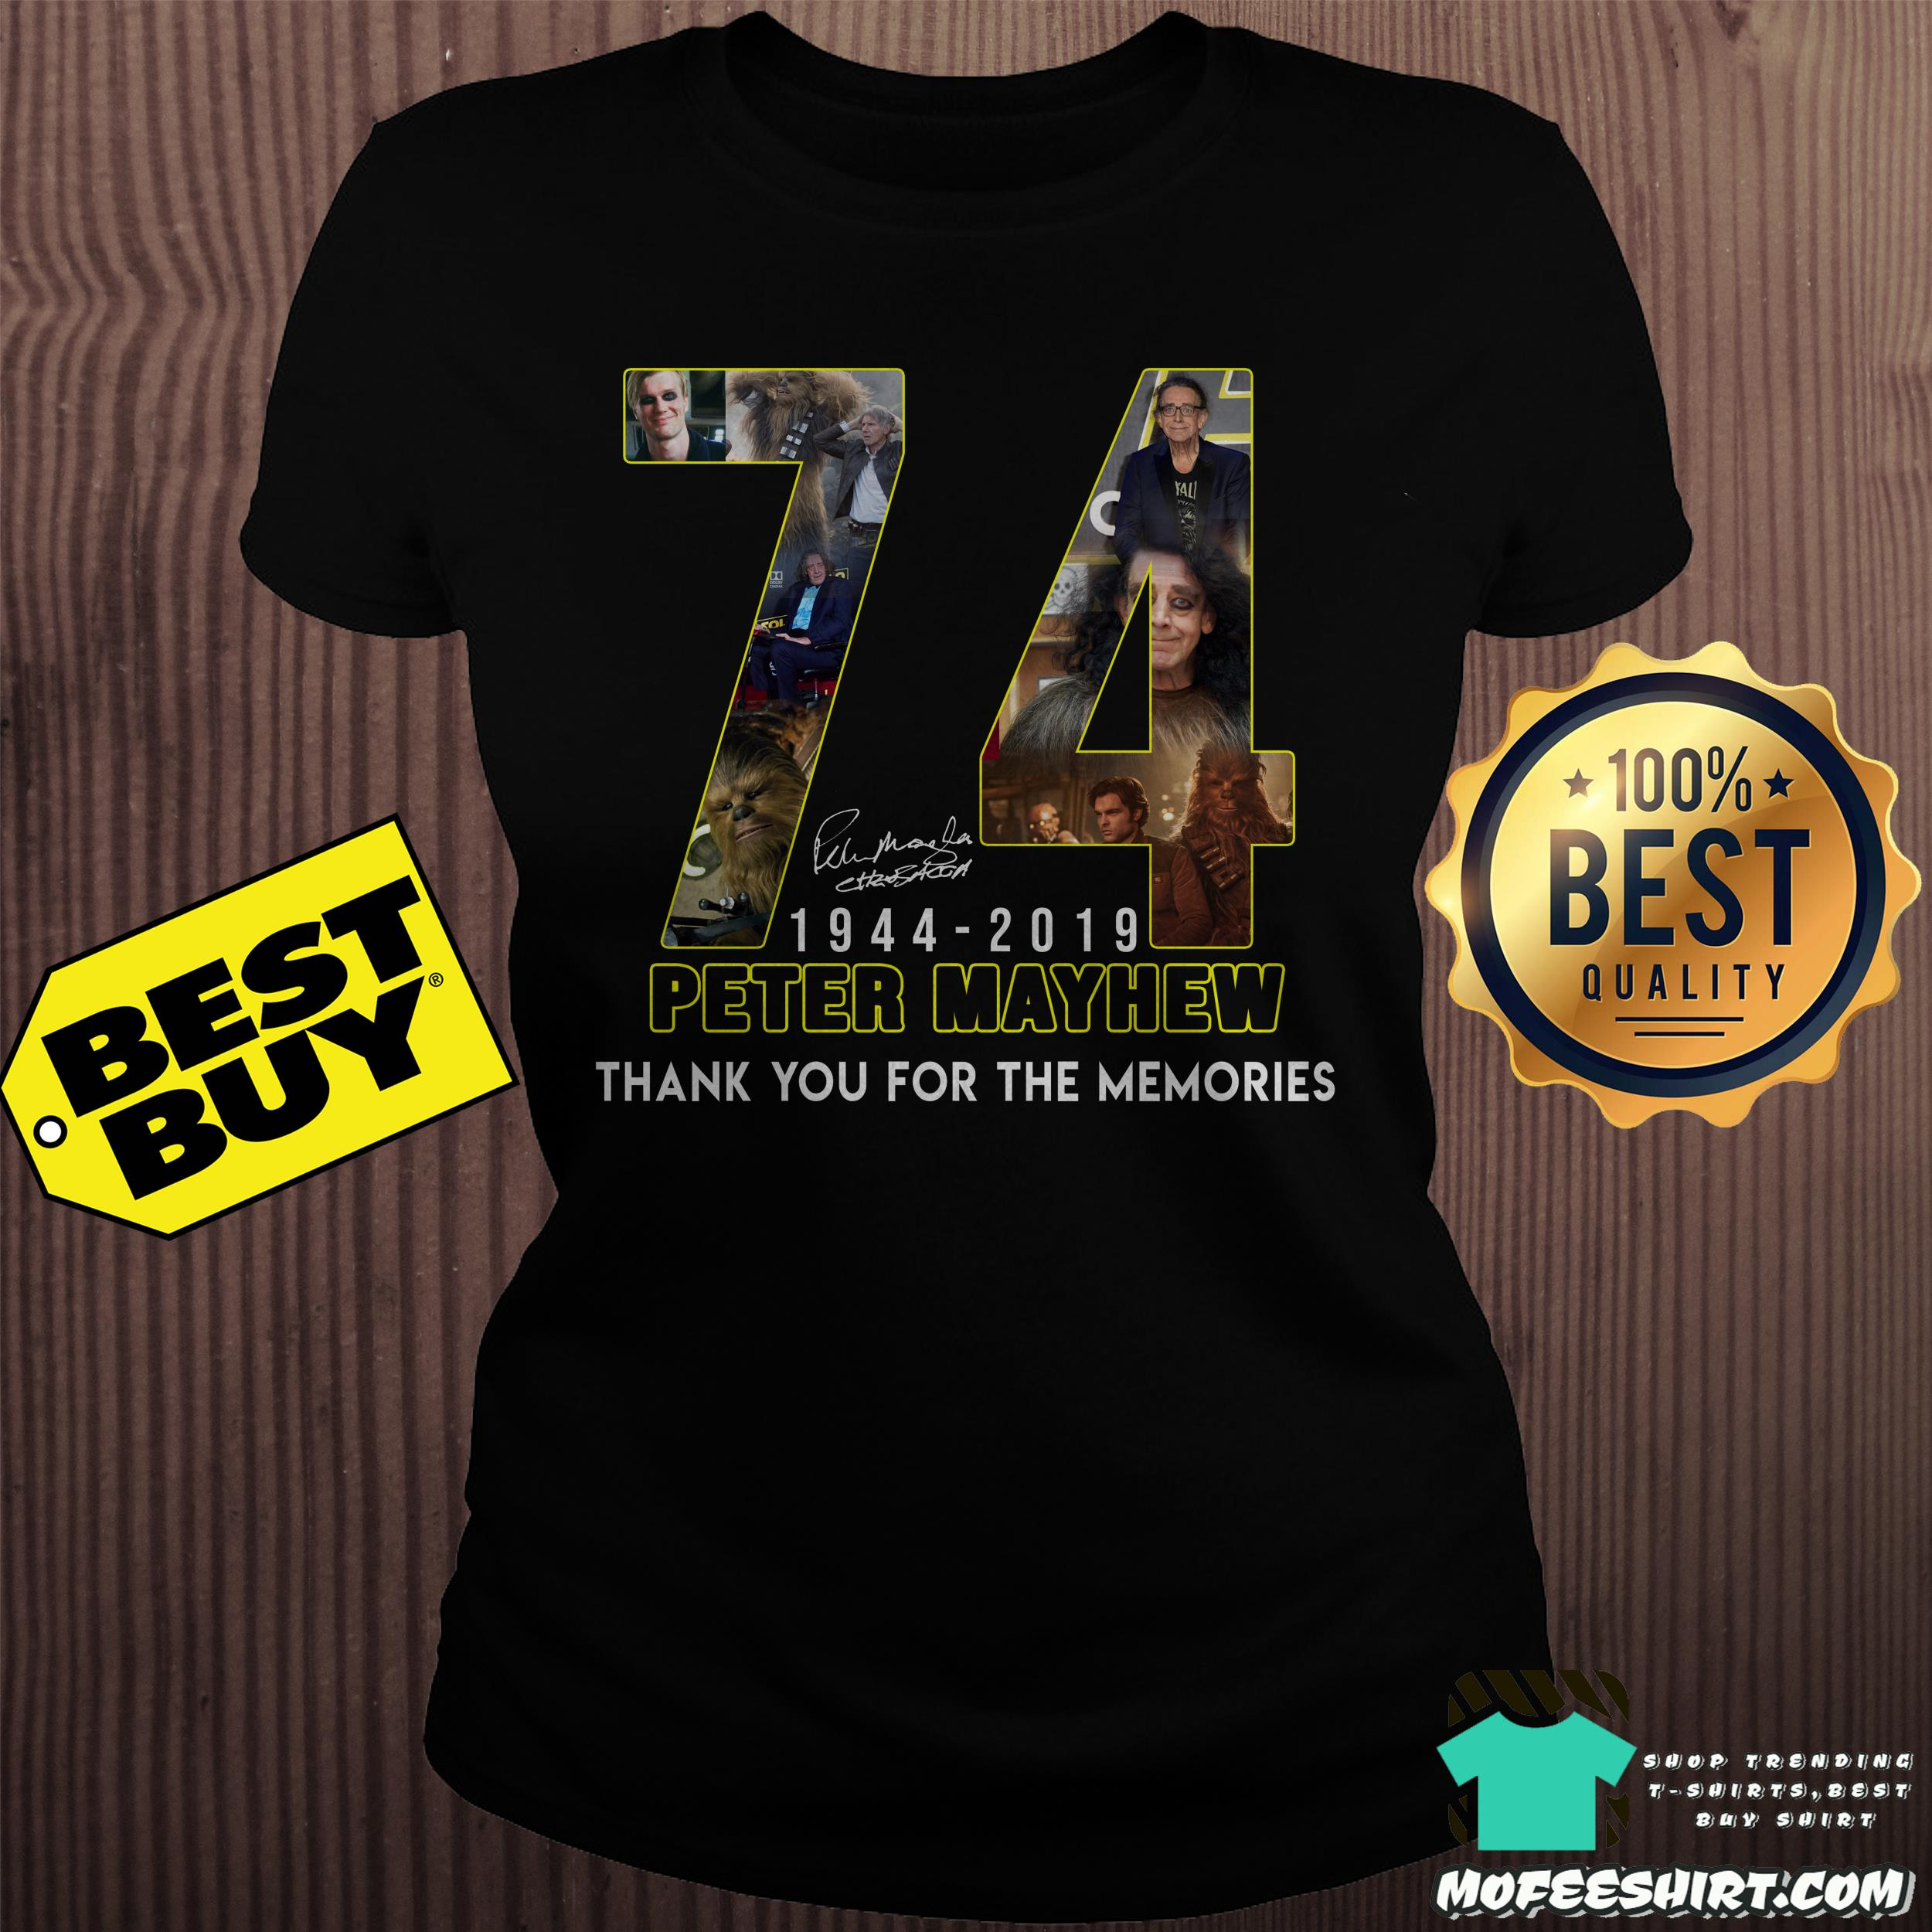 74 peter mayhew 1944 2019 thank you for the memories ladies tee - 74 Peter Mayhew 1944 - 2019 thank you for the memories shirt